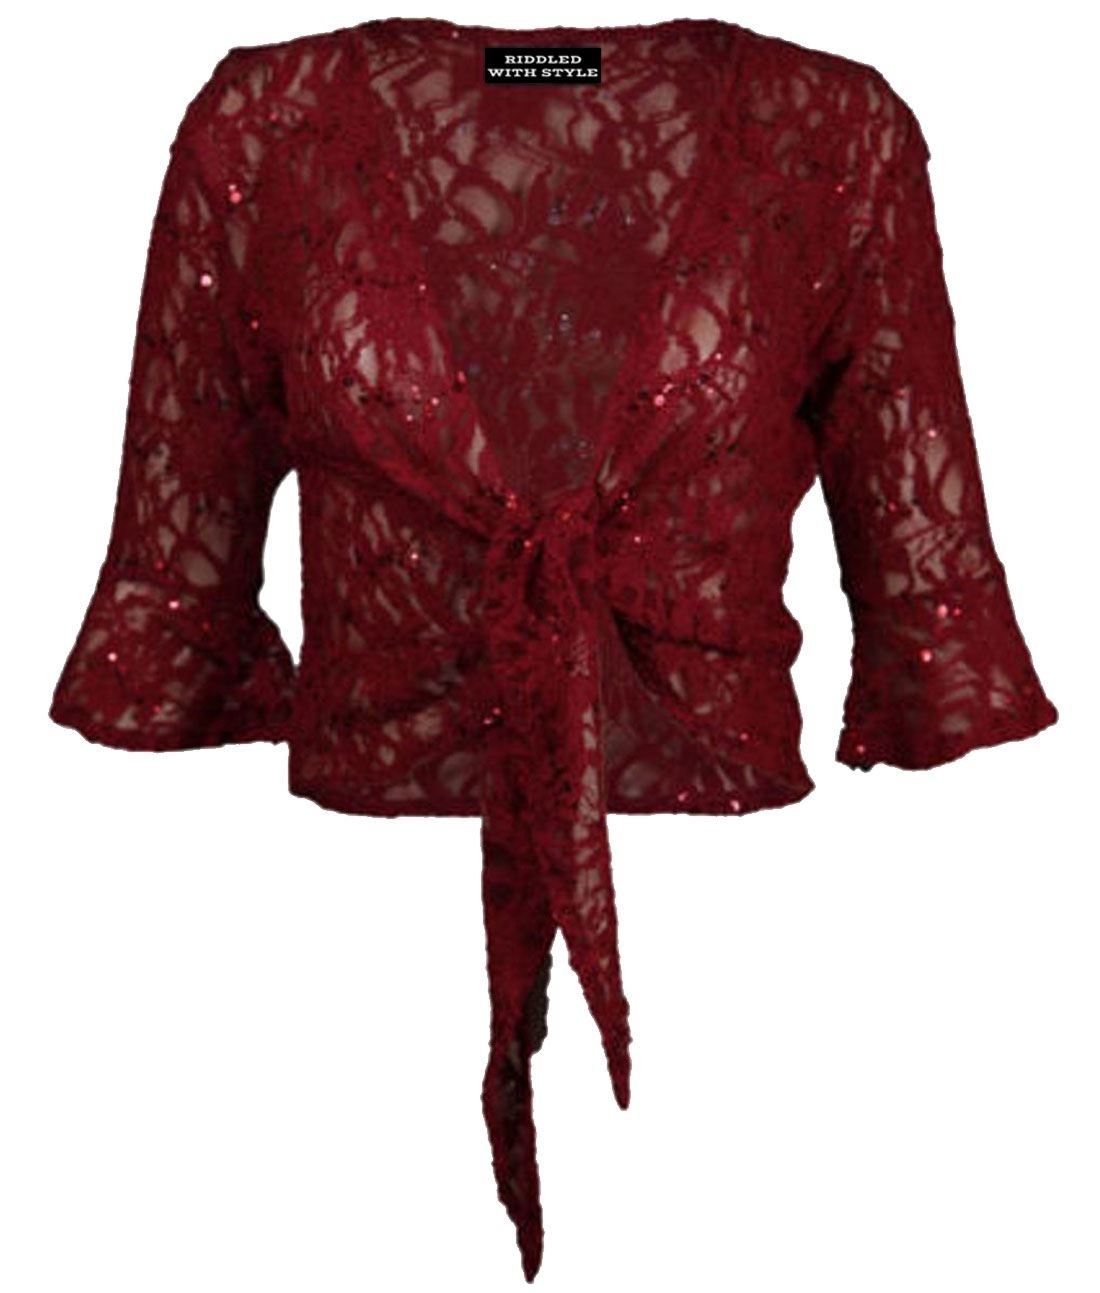 NEW WOMENS LADIES PLUSSIZE FLORAL LACE SEQUIN 3/4SLEEVE TIE UP SHRUG BOLERO TOPS RIDDLED WITH STYLE